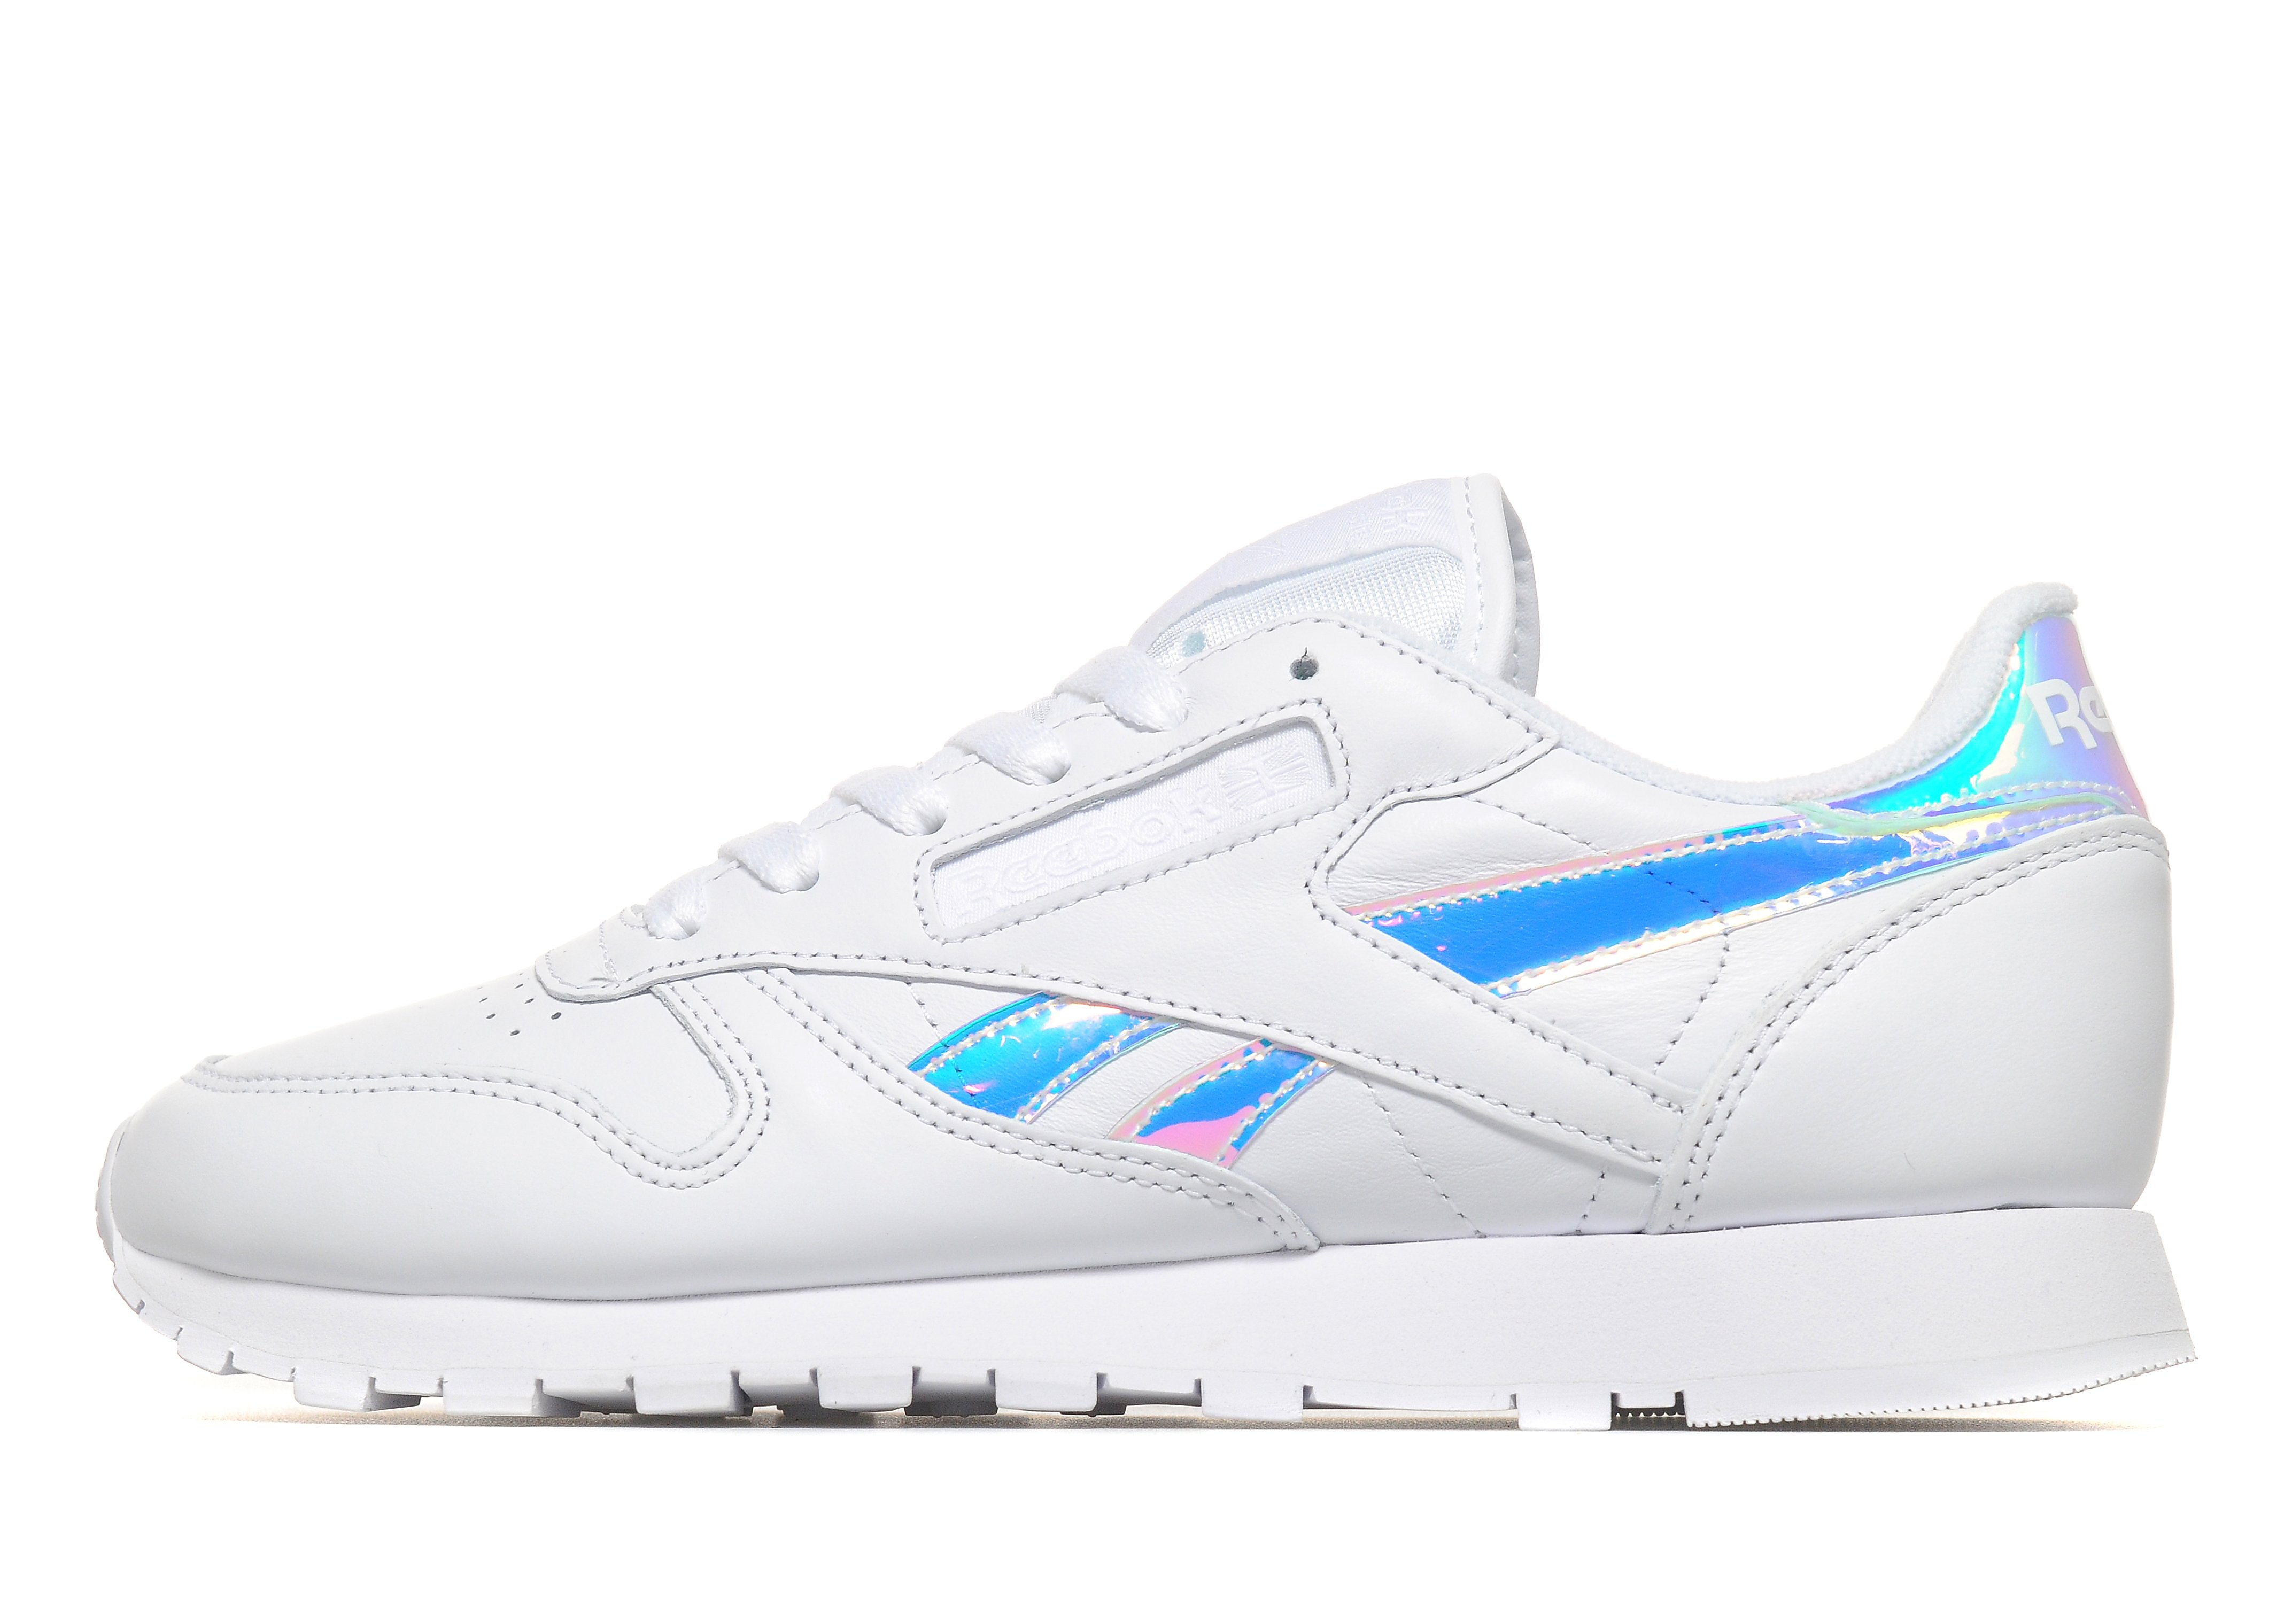 Reebok Classic Leather Iridescent Women's